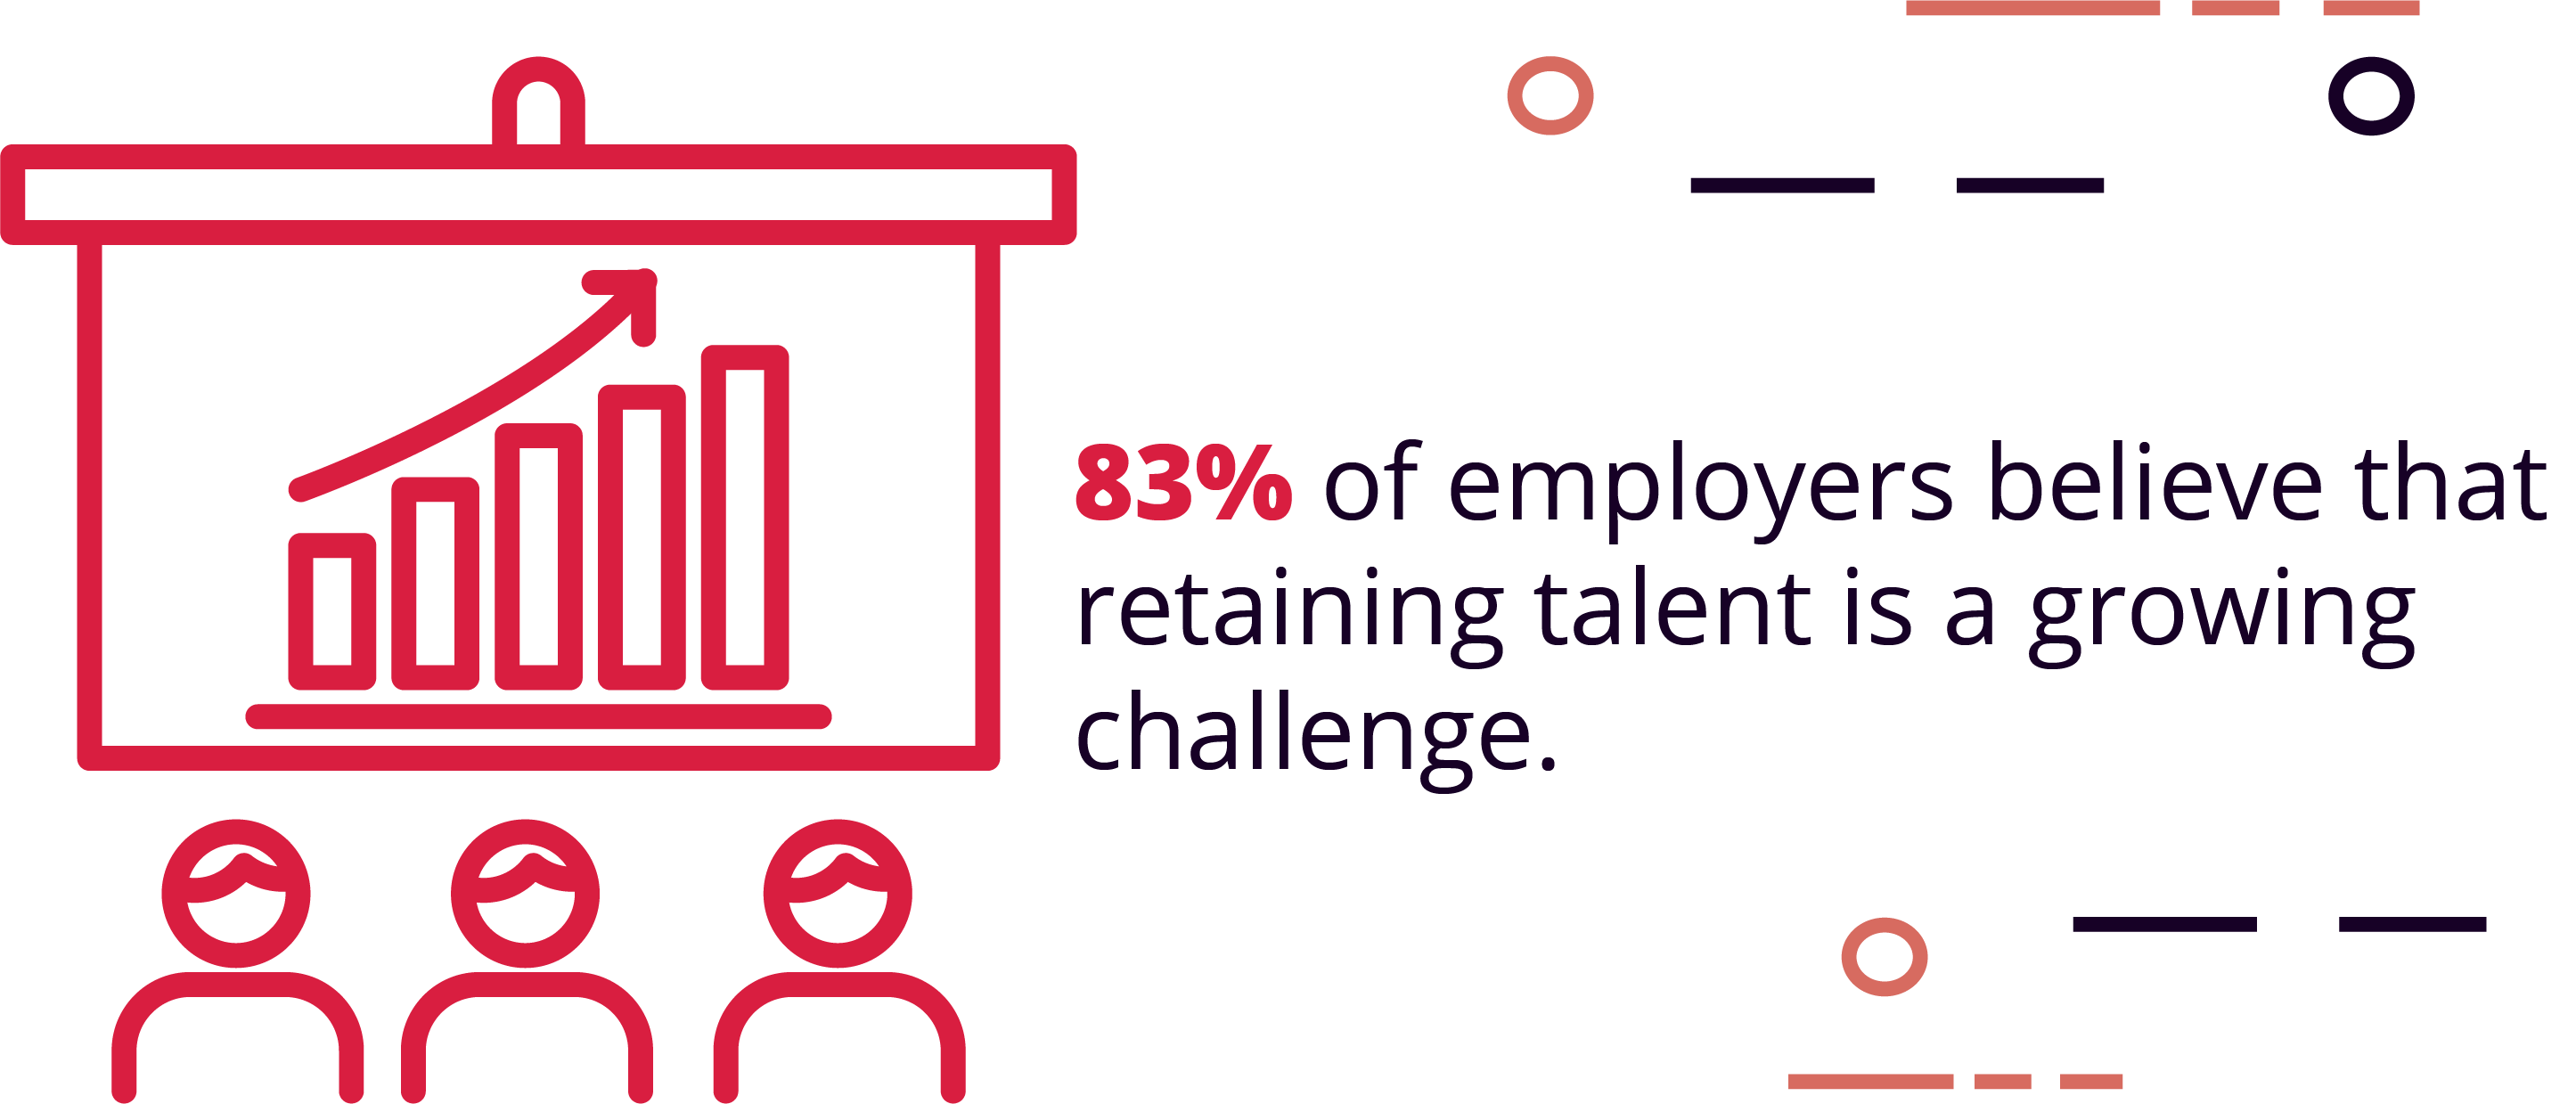 83% of employers believe that retaining talent is a growing challenge